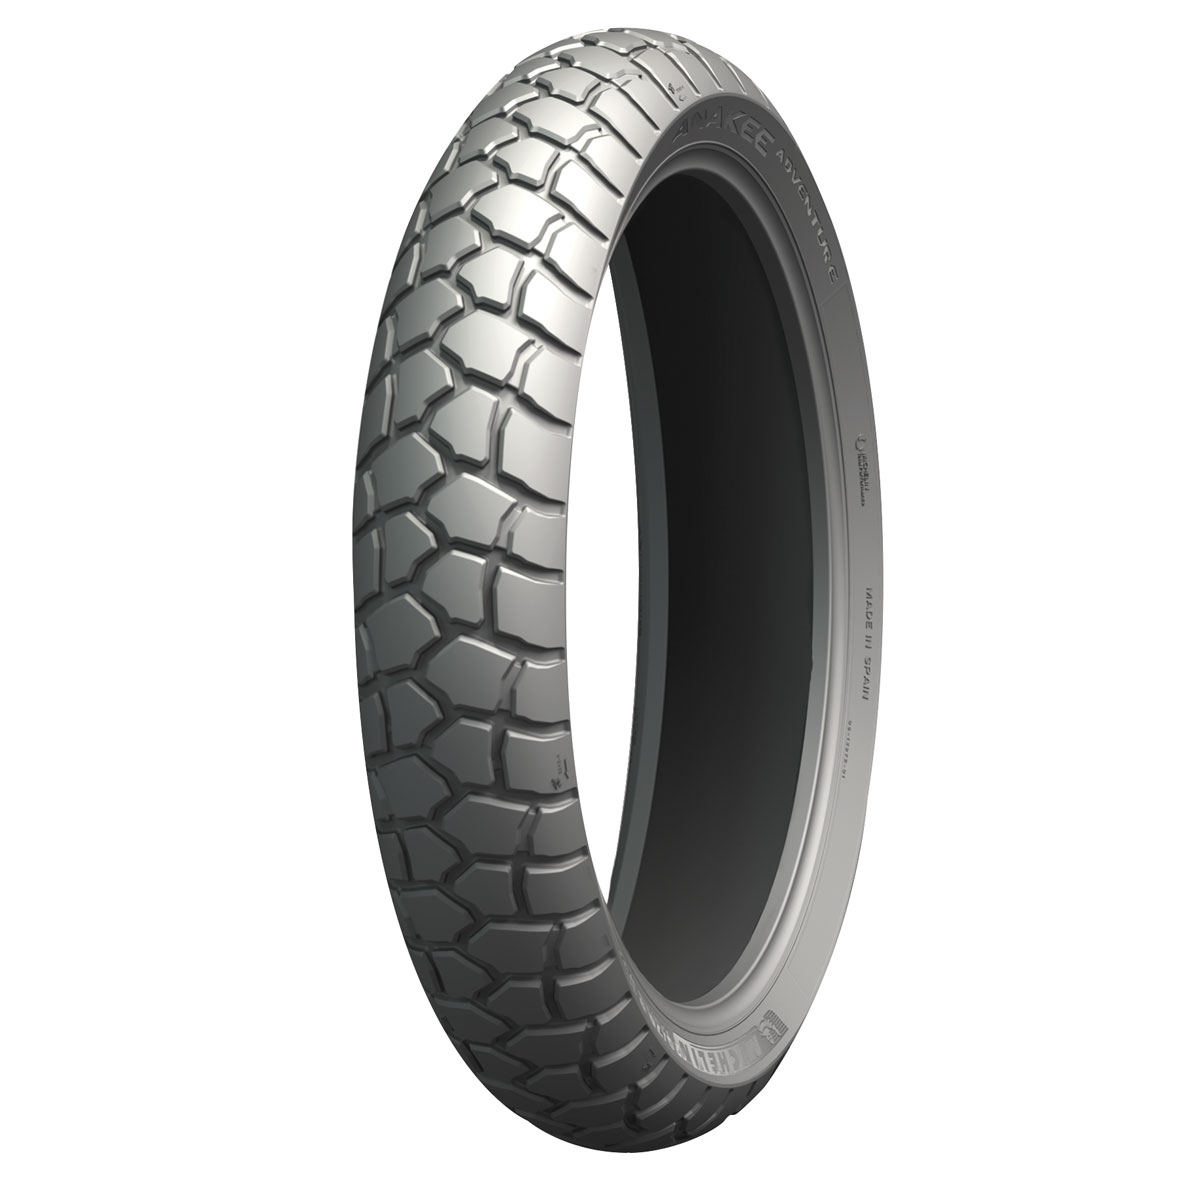 Michelin Anakee Adventure 110 80 VR 19